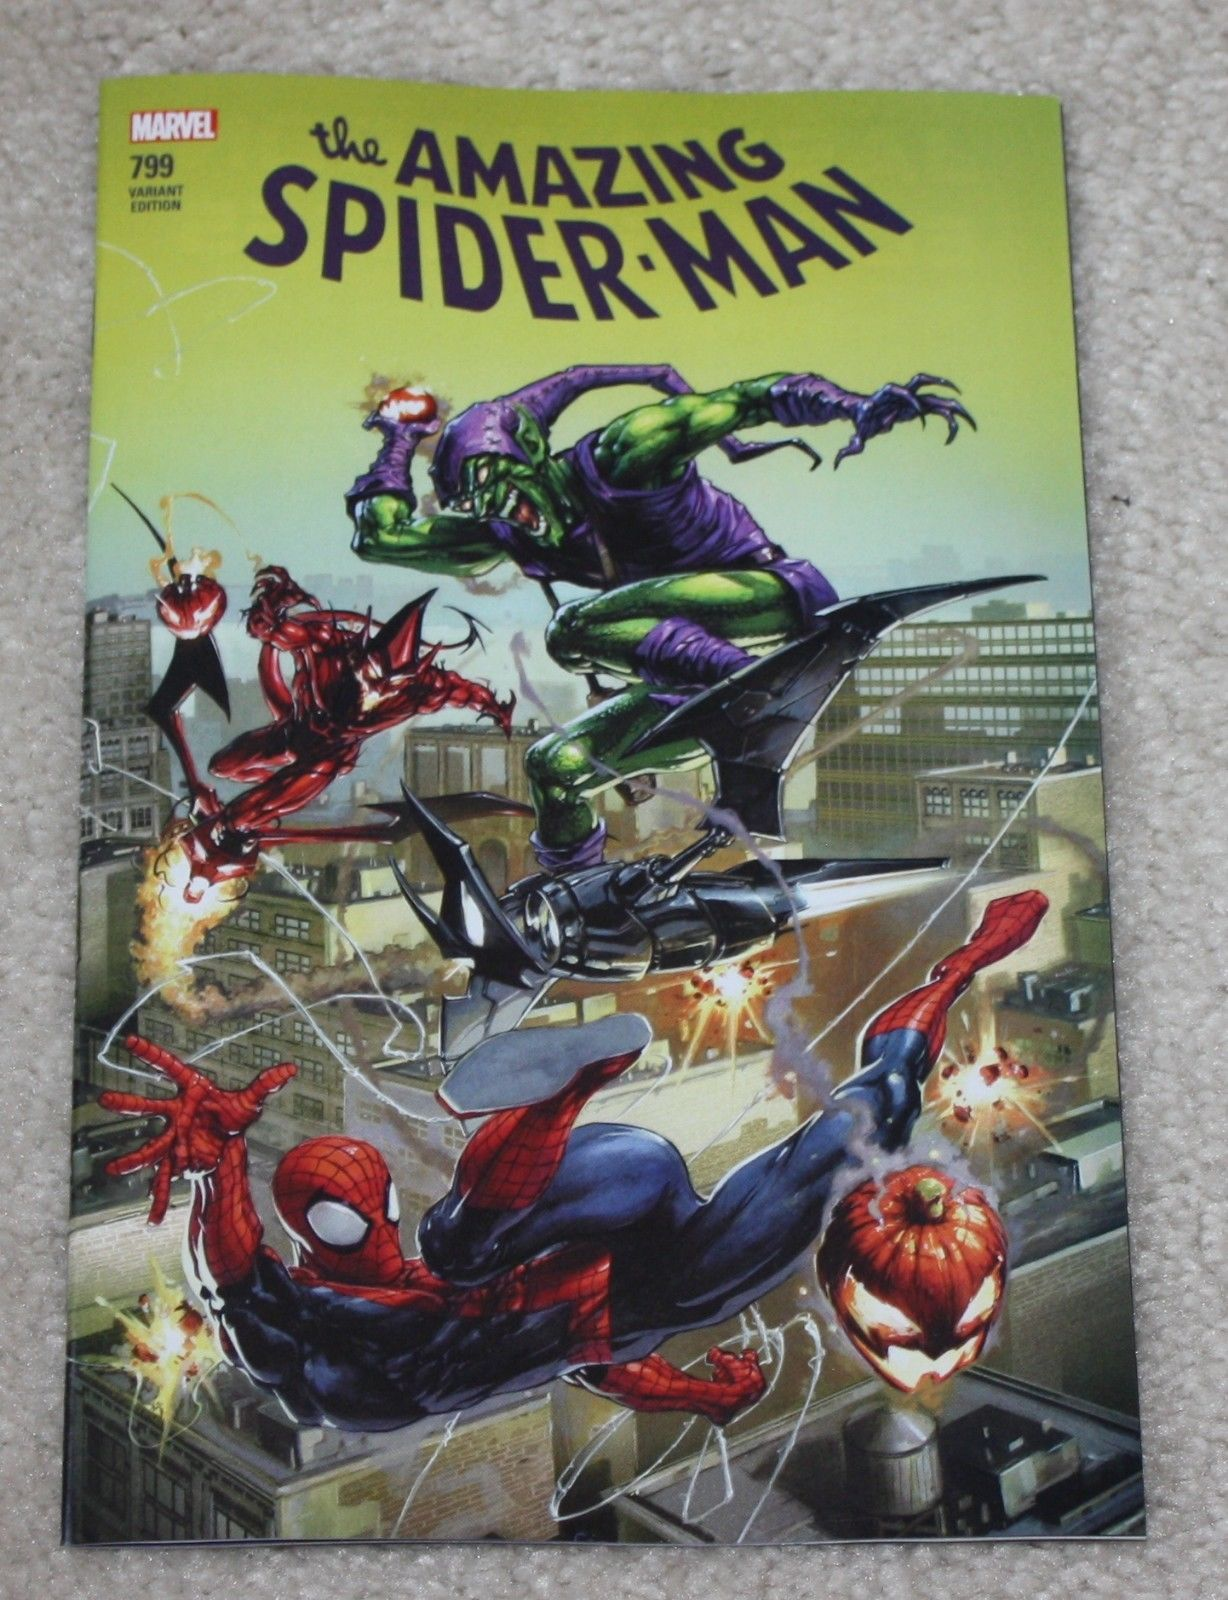 AMAZING SPIDER-MAN #799 CLAYTON CRAIN LOGO EXCLUSIVE VARIANT RED GOBLIN